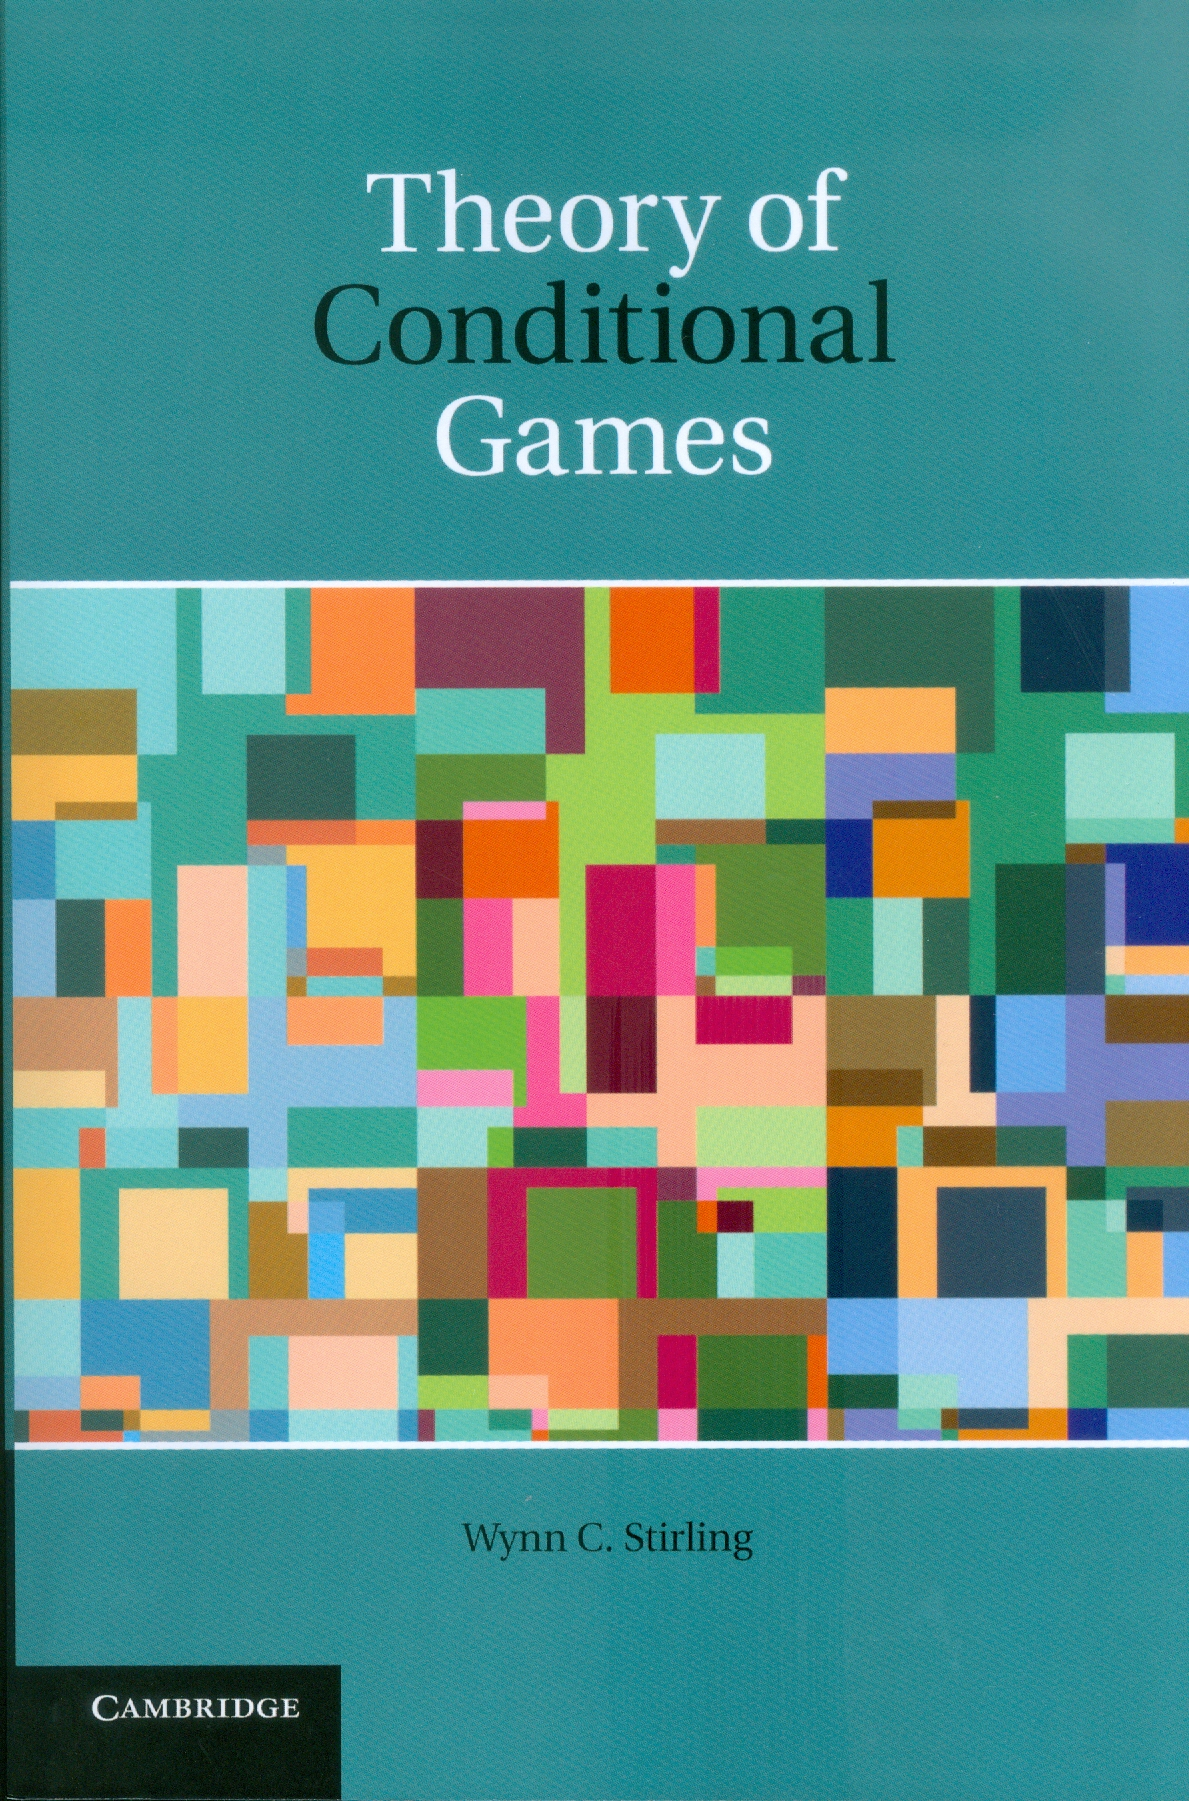 theory of conditional games0001.jpg